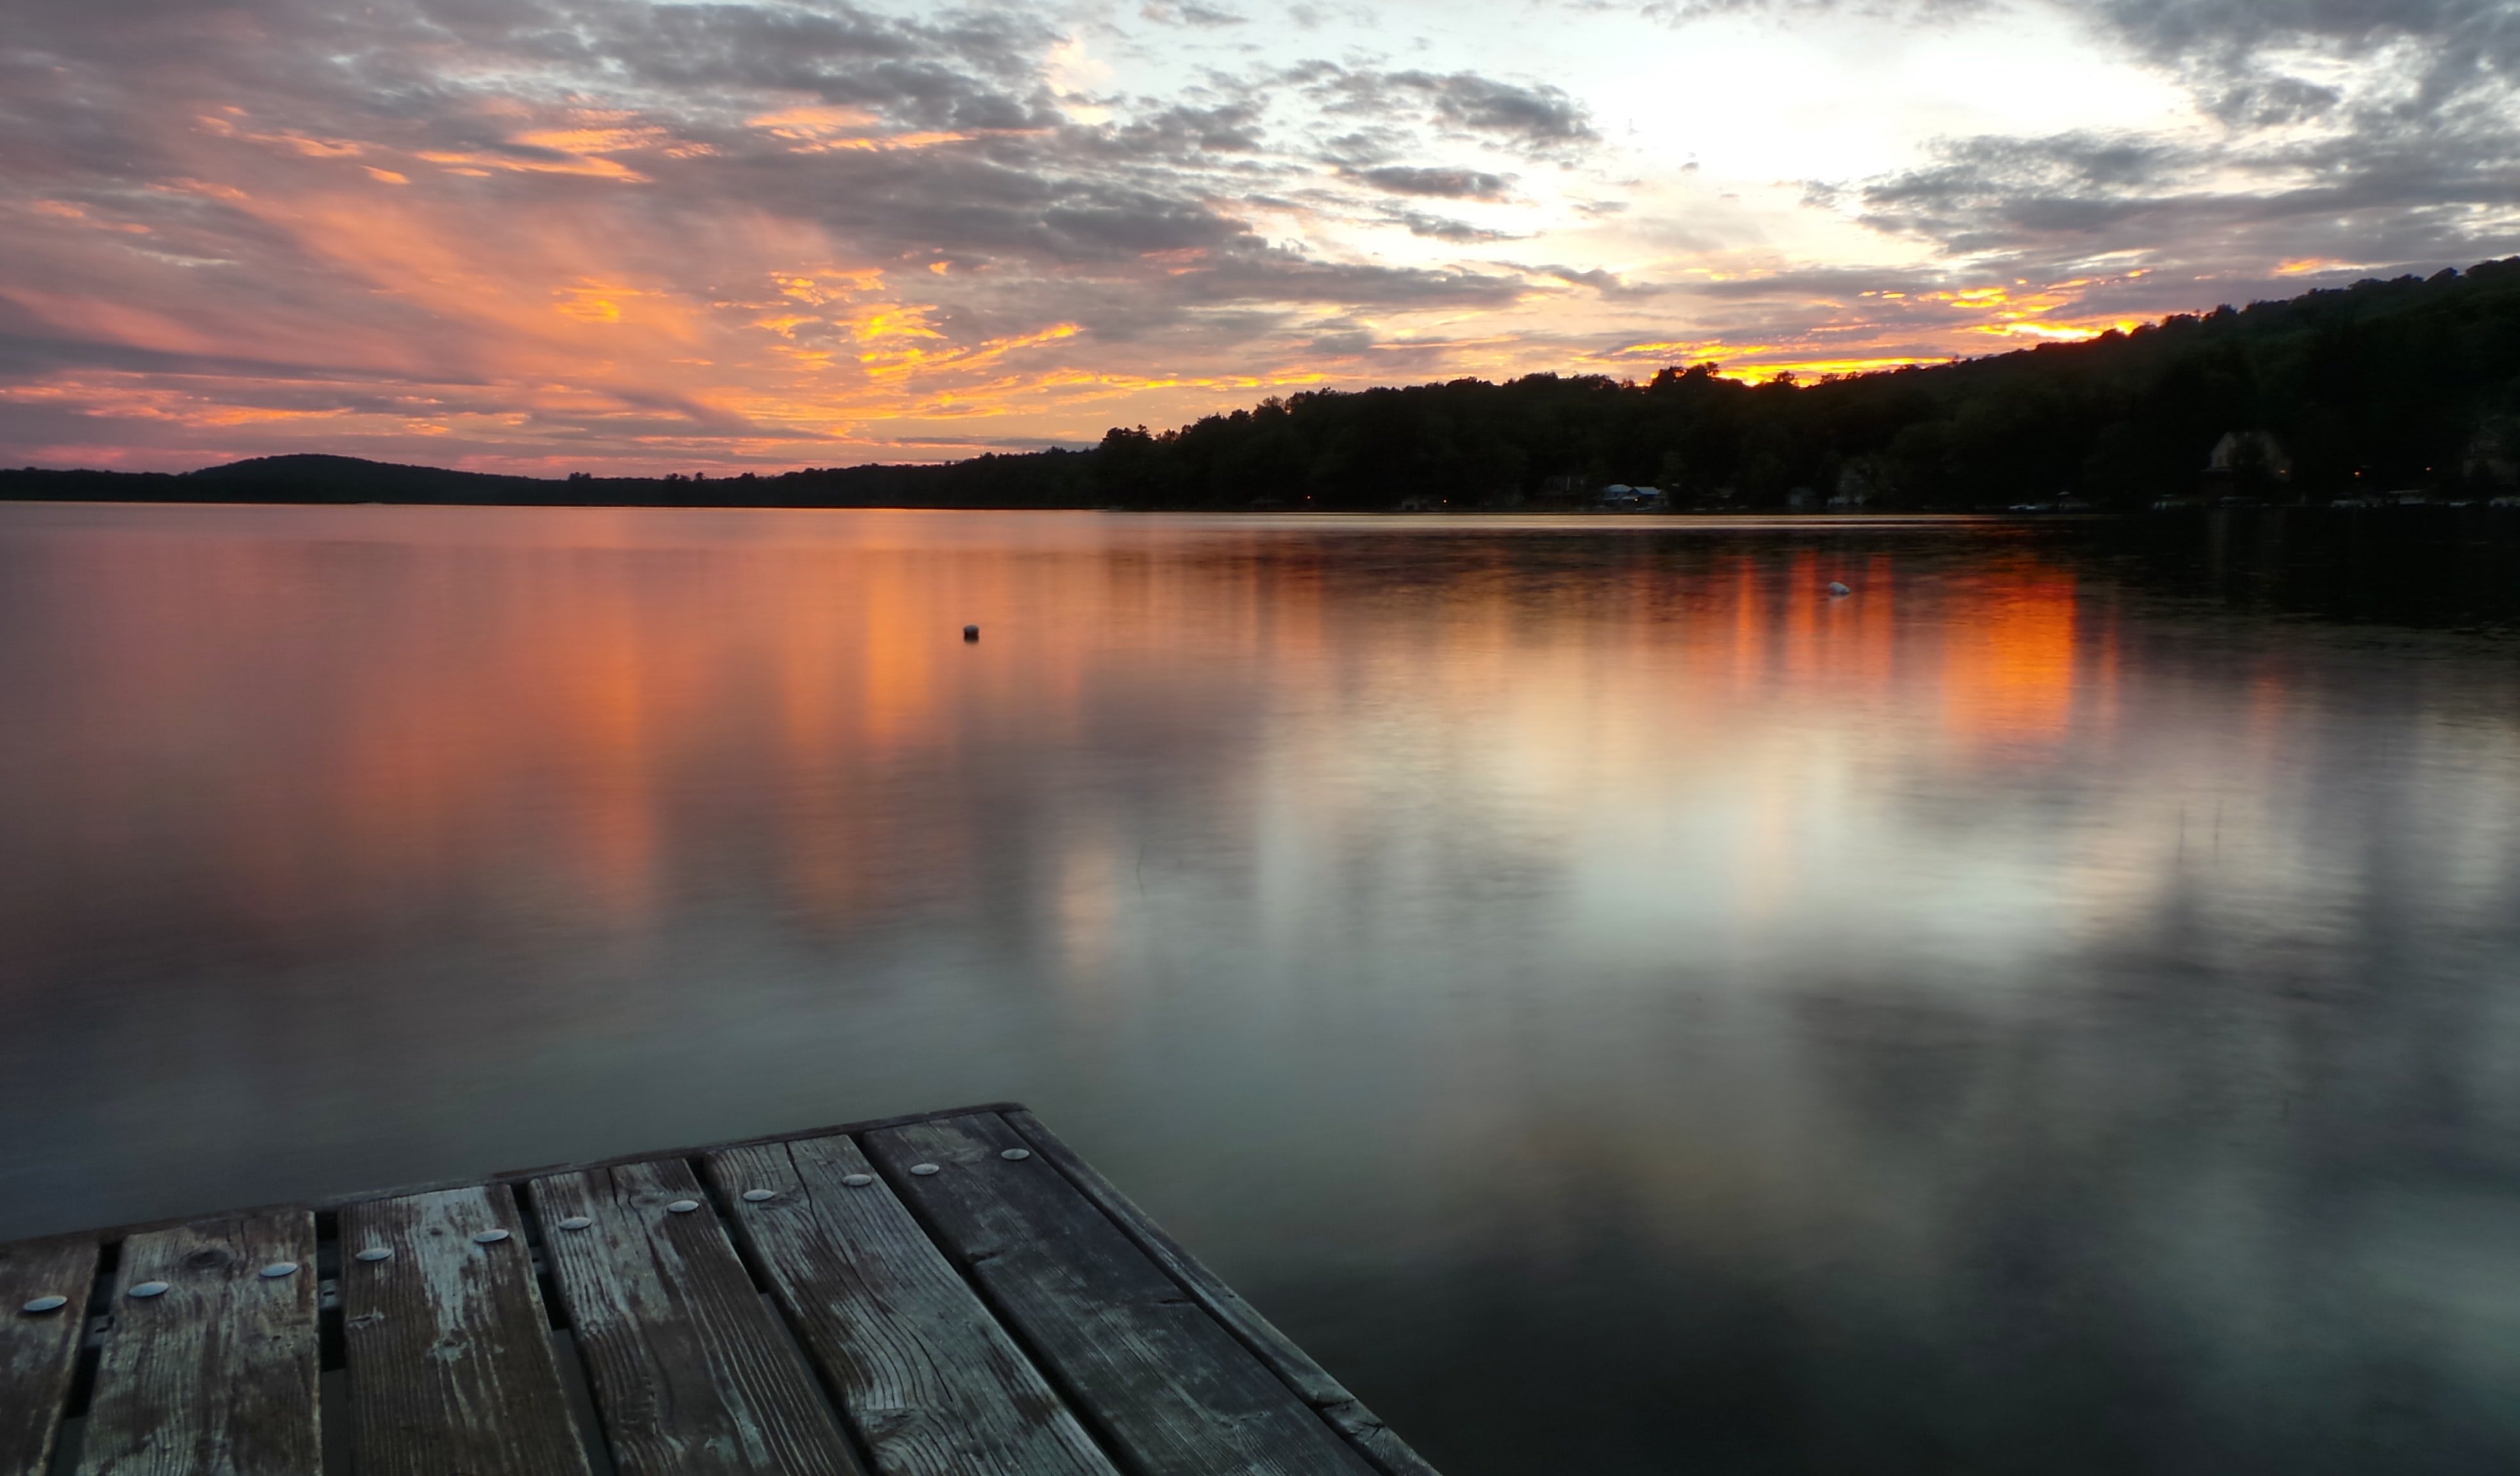 An orange and blue sunset reflecting upon a calm lake, seen from a wooden pier